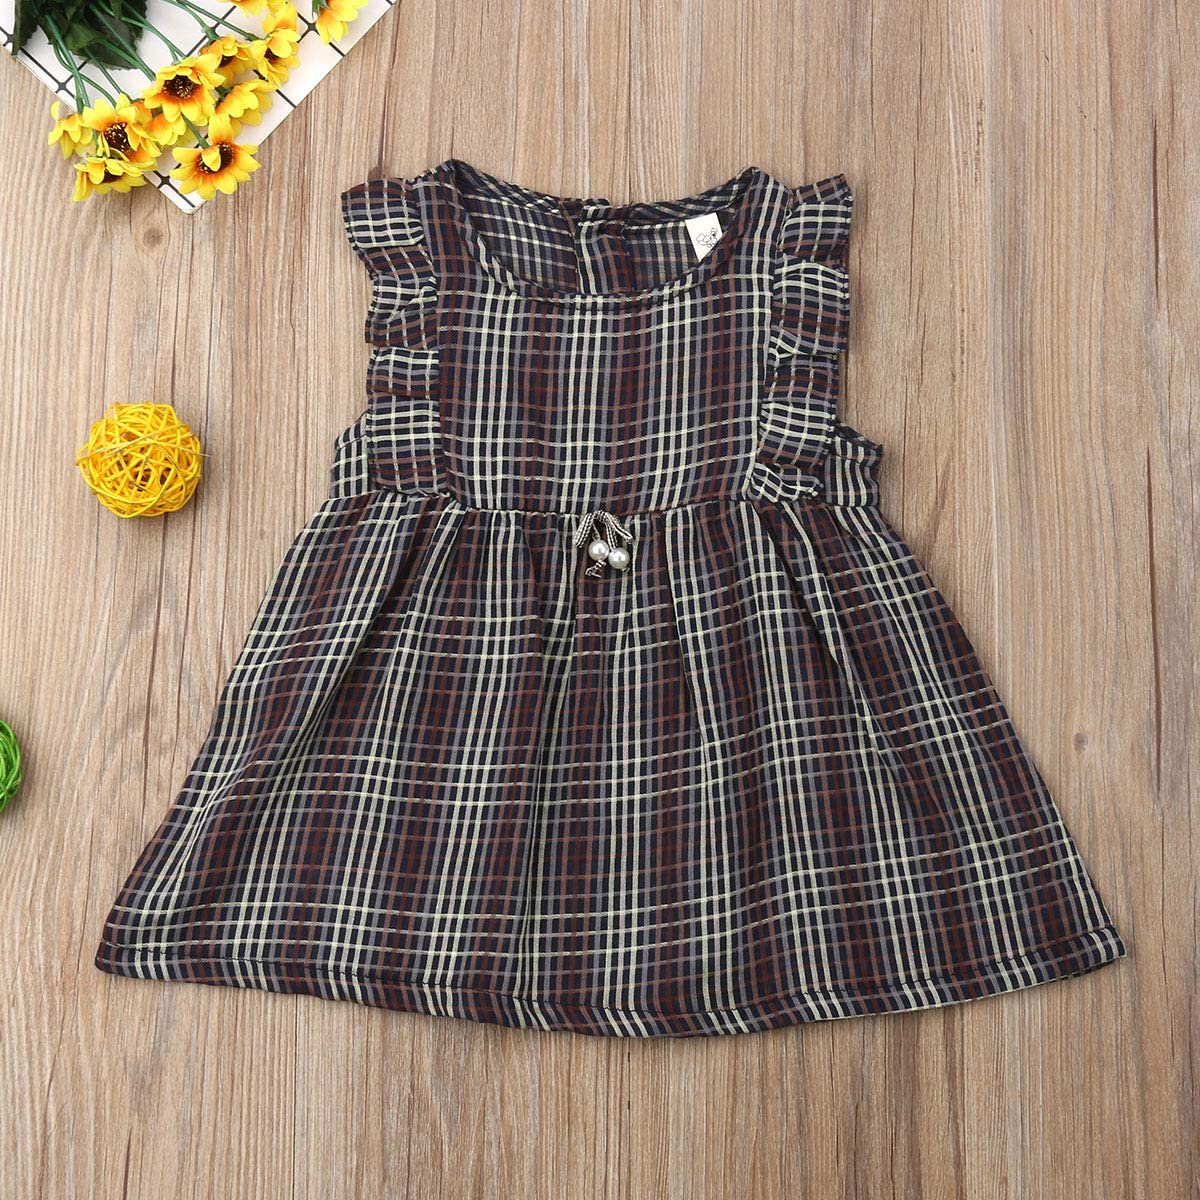 Toddler Baby Girl Ruffle Dress Sleeveless Plaid Sundress Summer Outfit Clothes